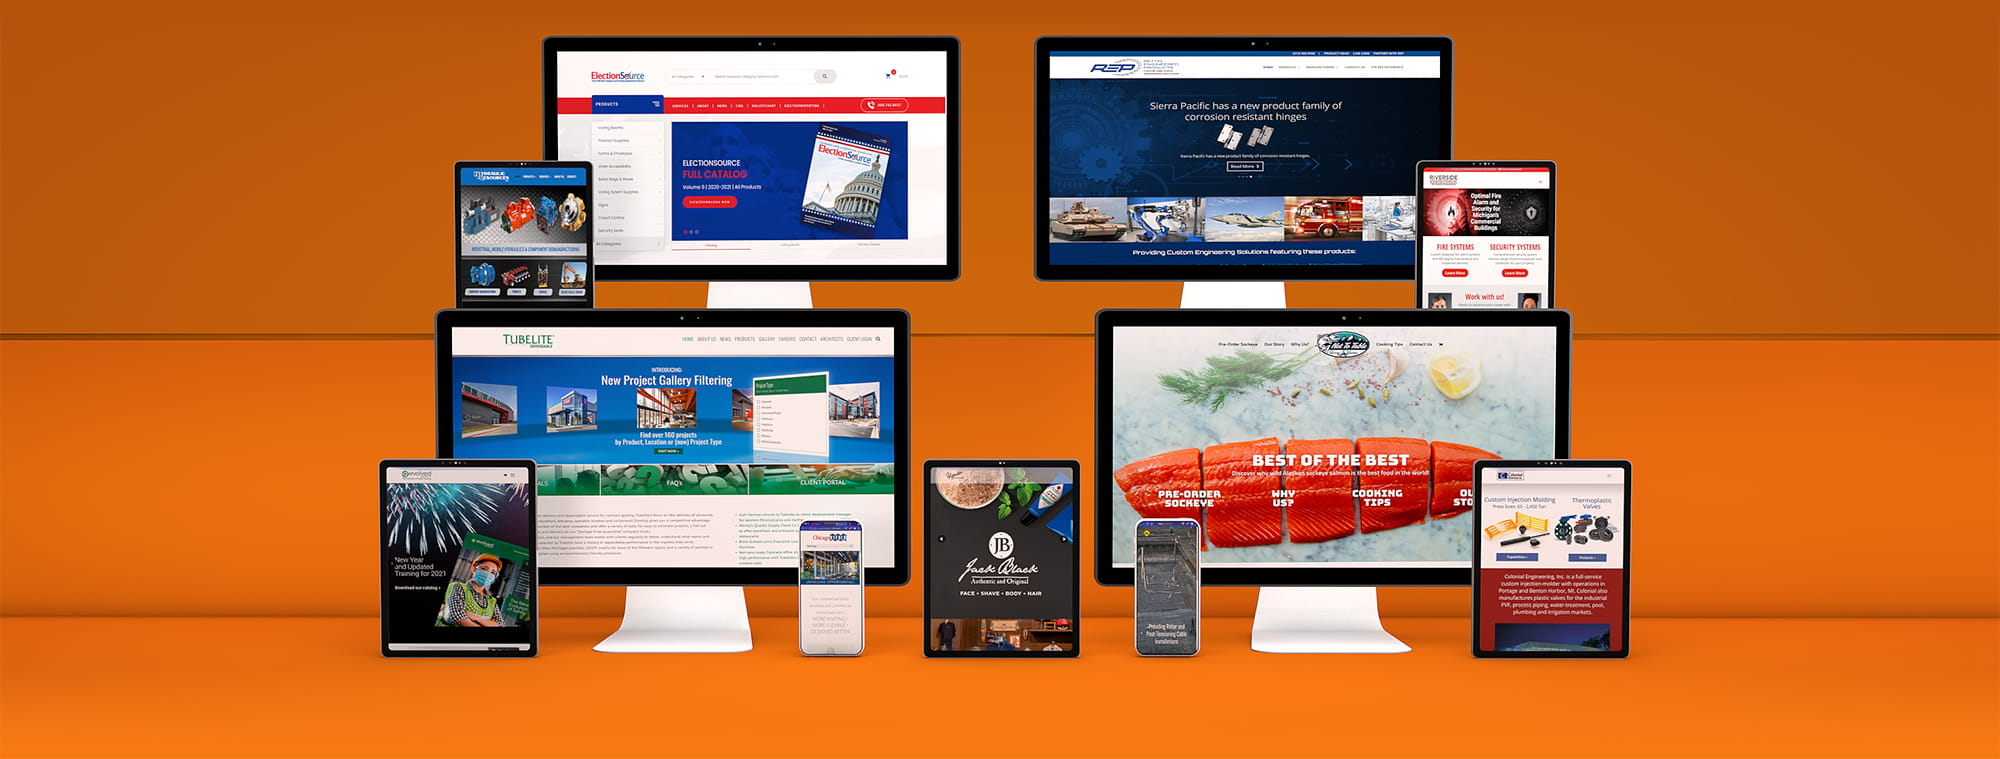 Kruse Web Design Projects